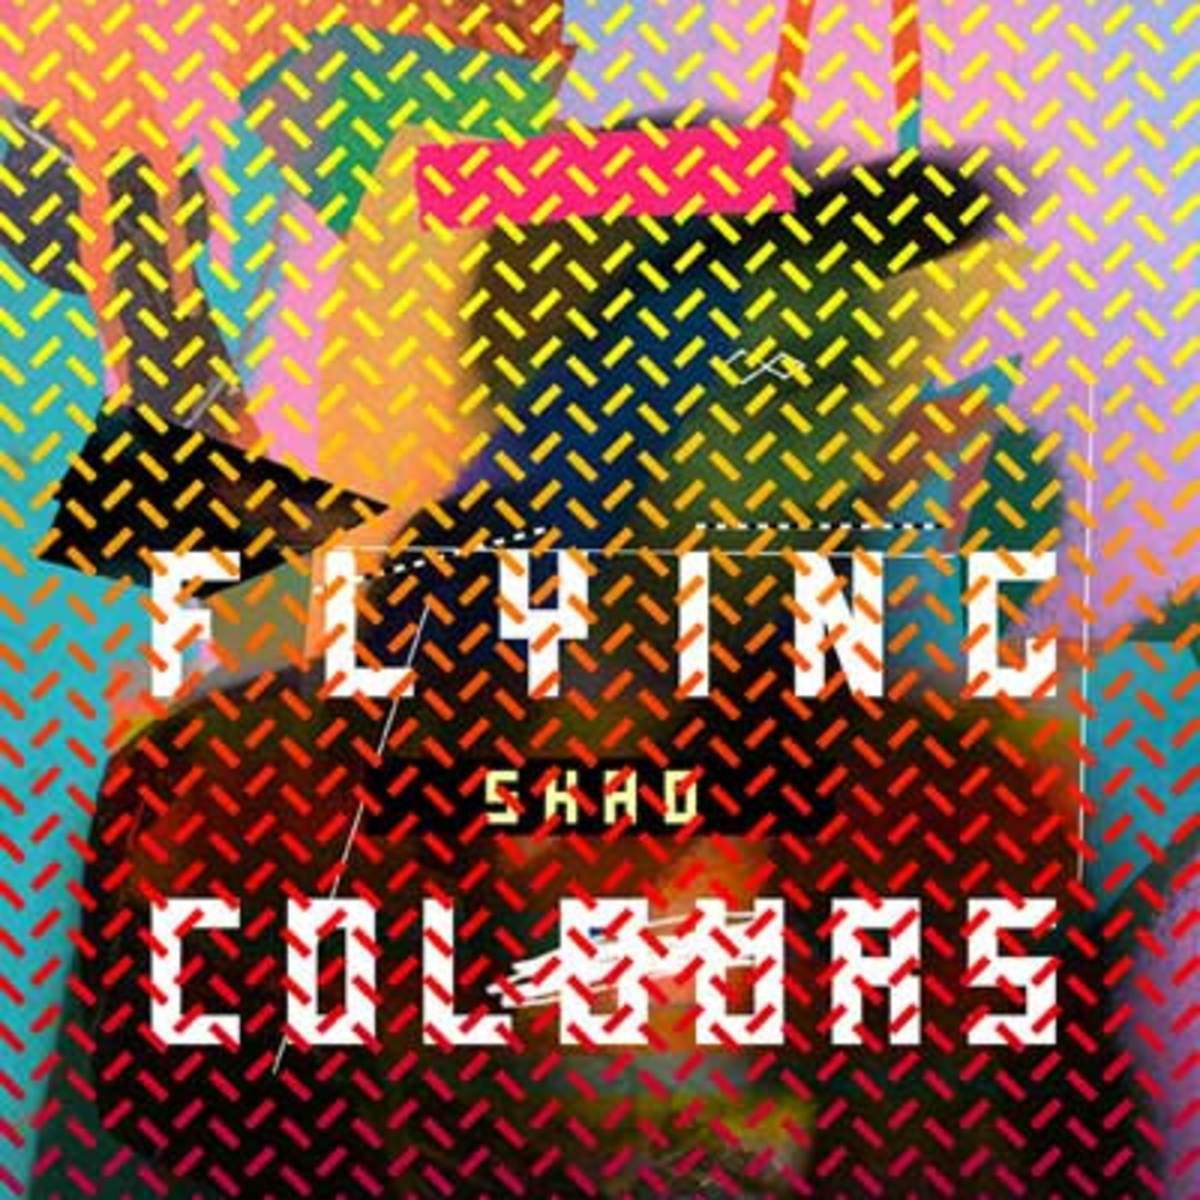 shad-flyingcolours.jpg